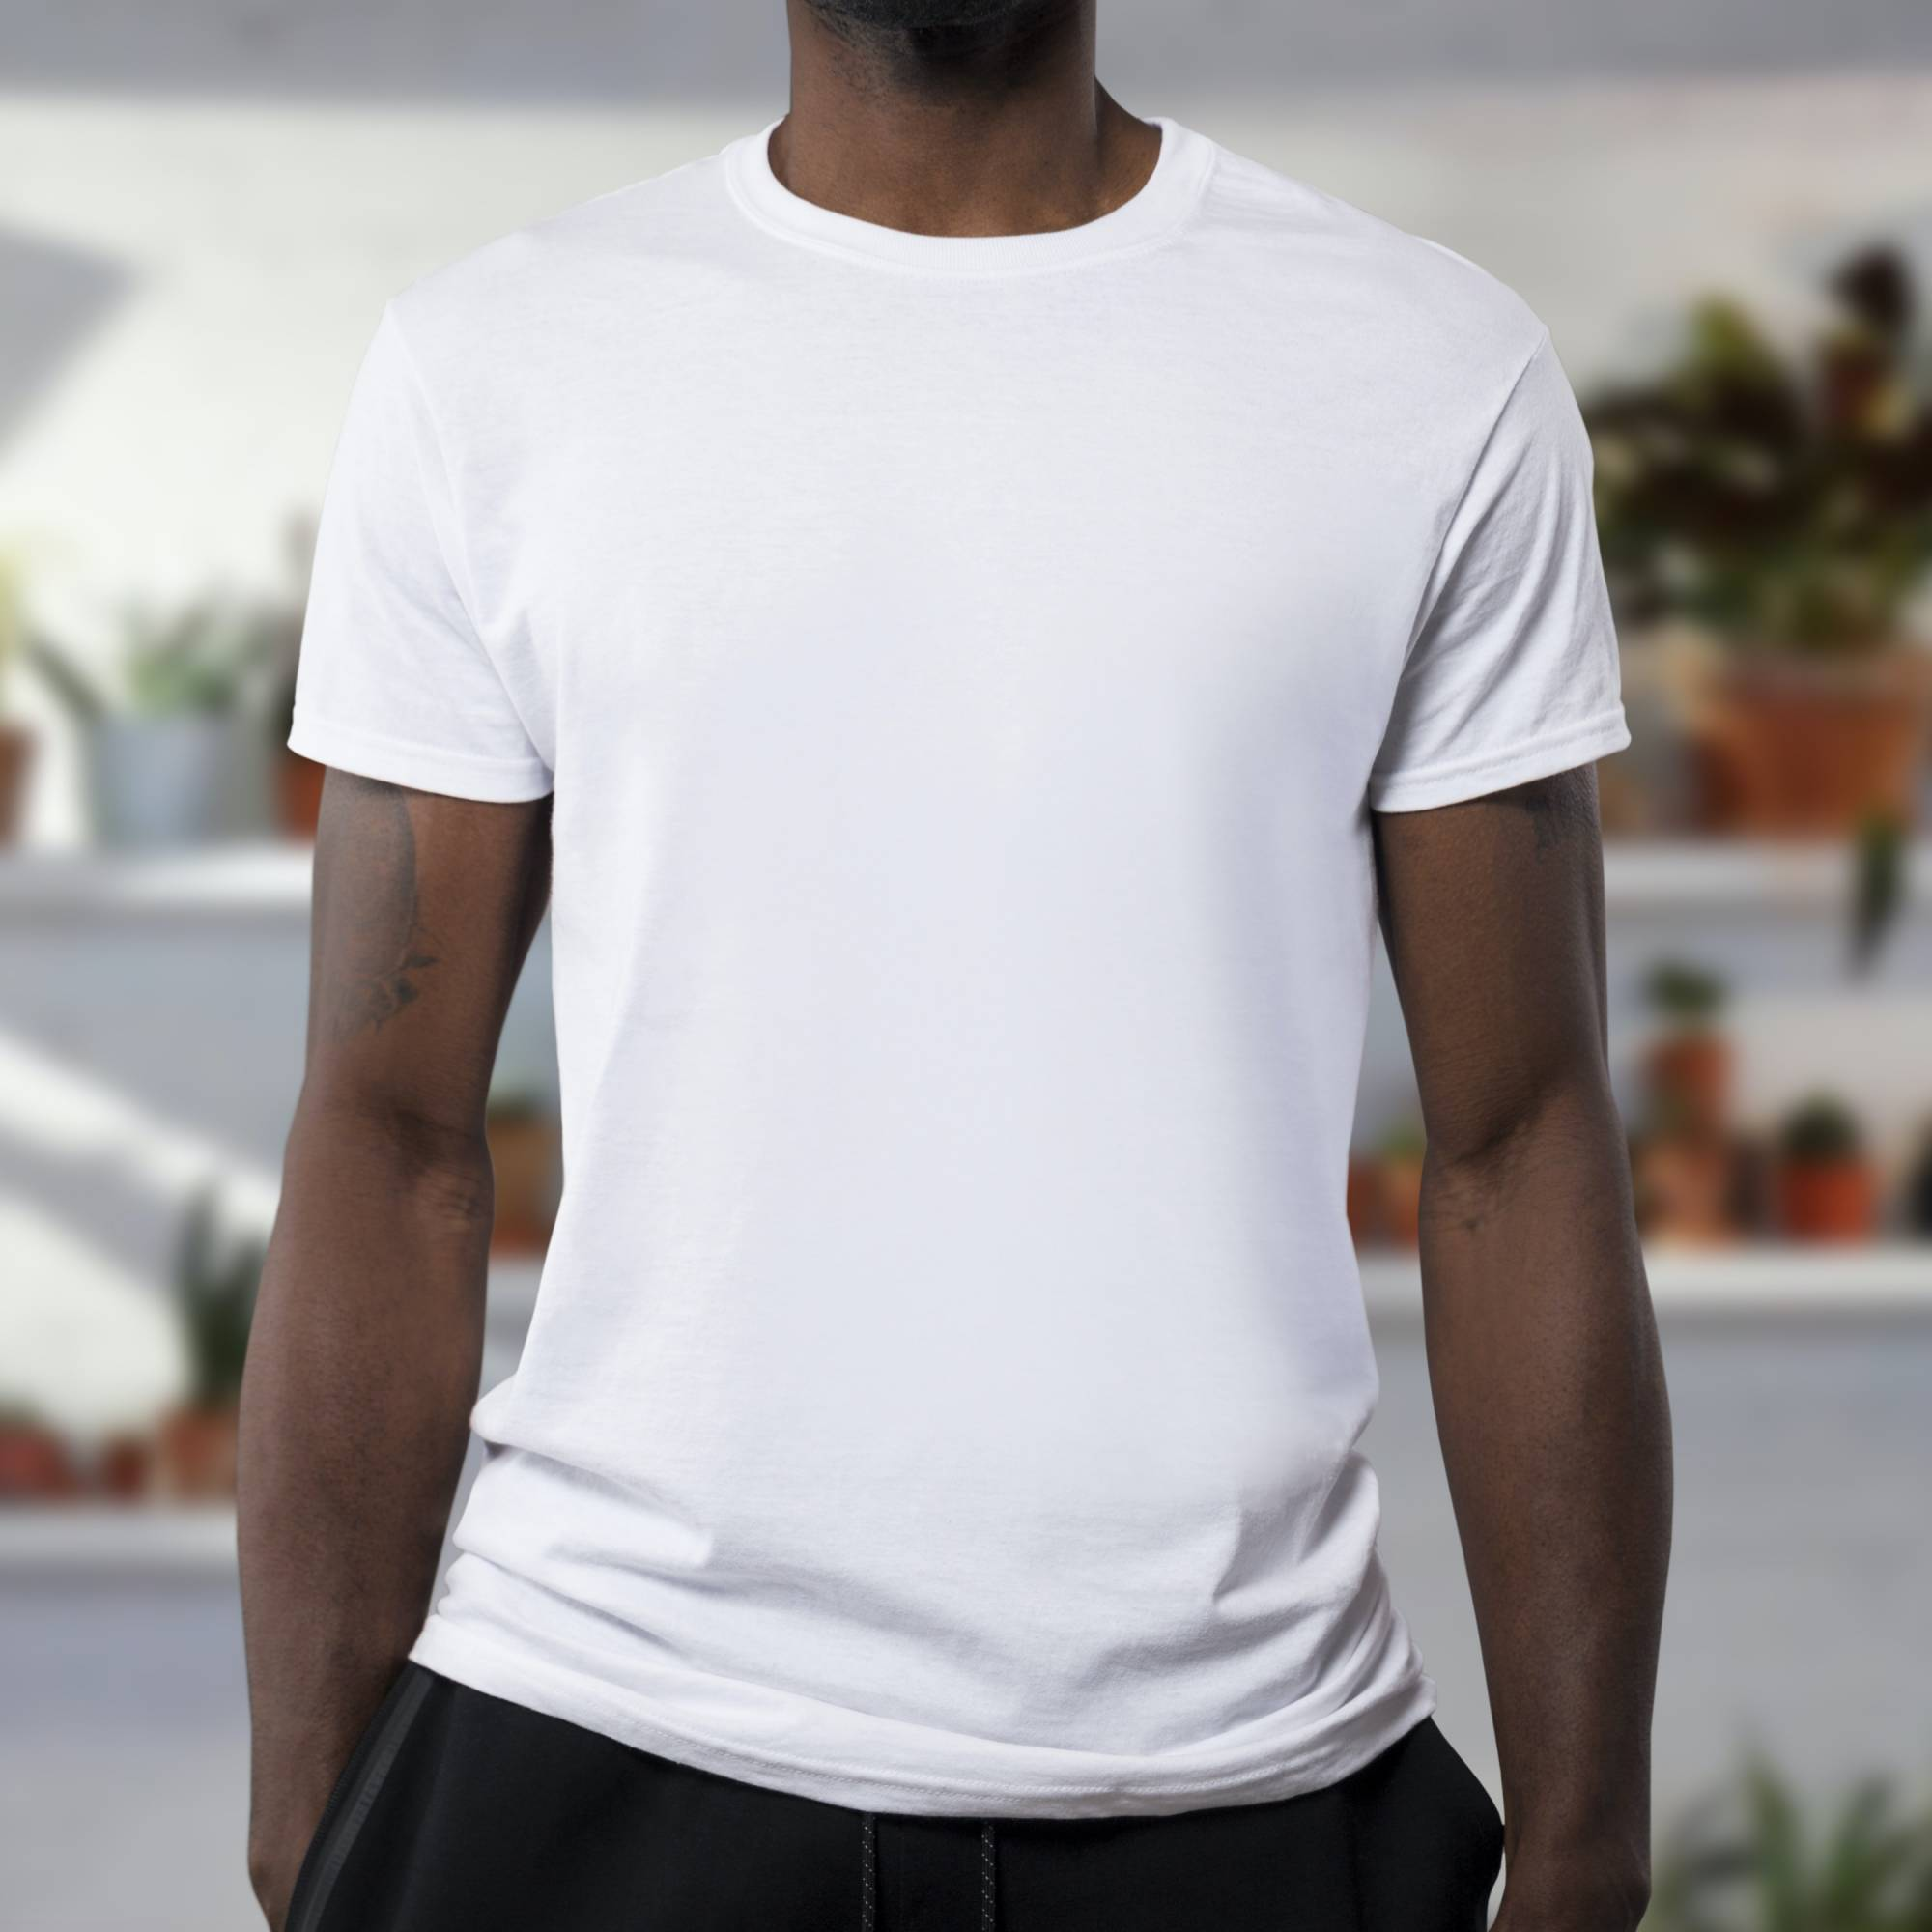 Man with white t-shirt